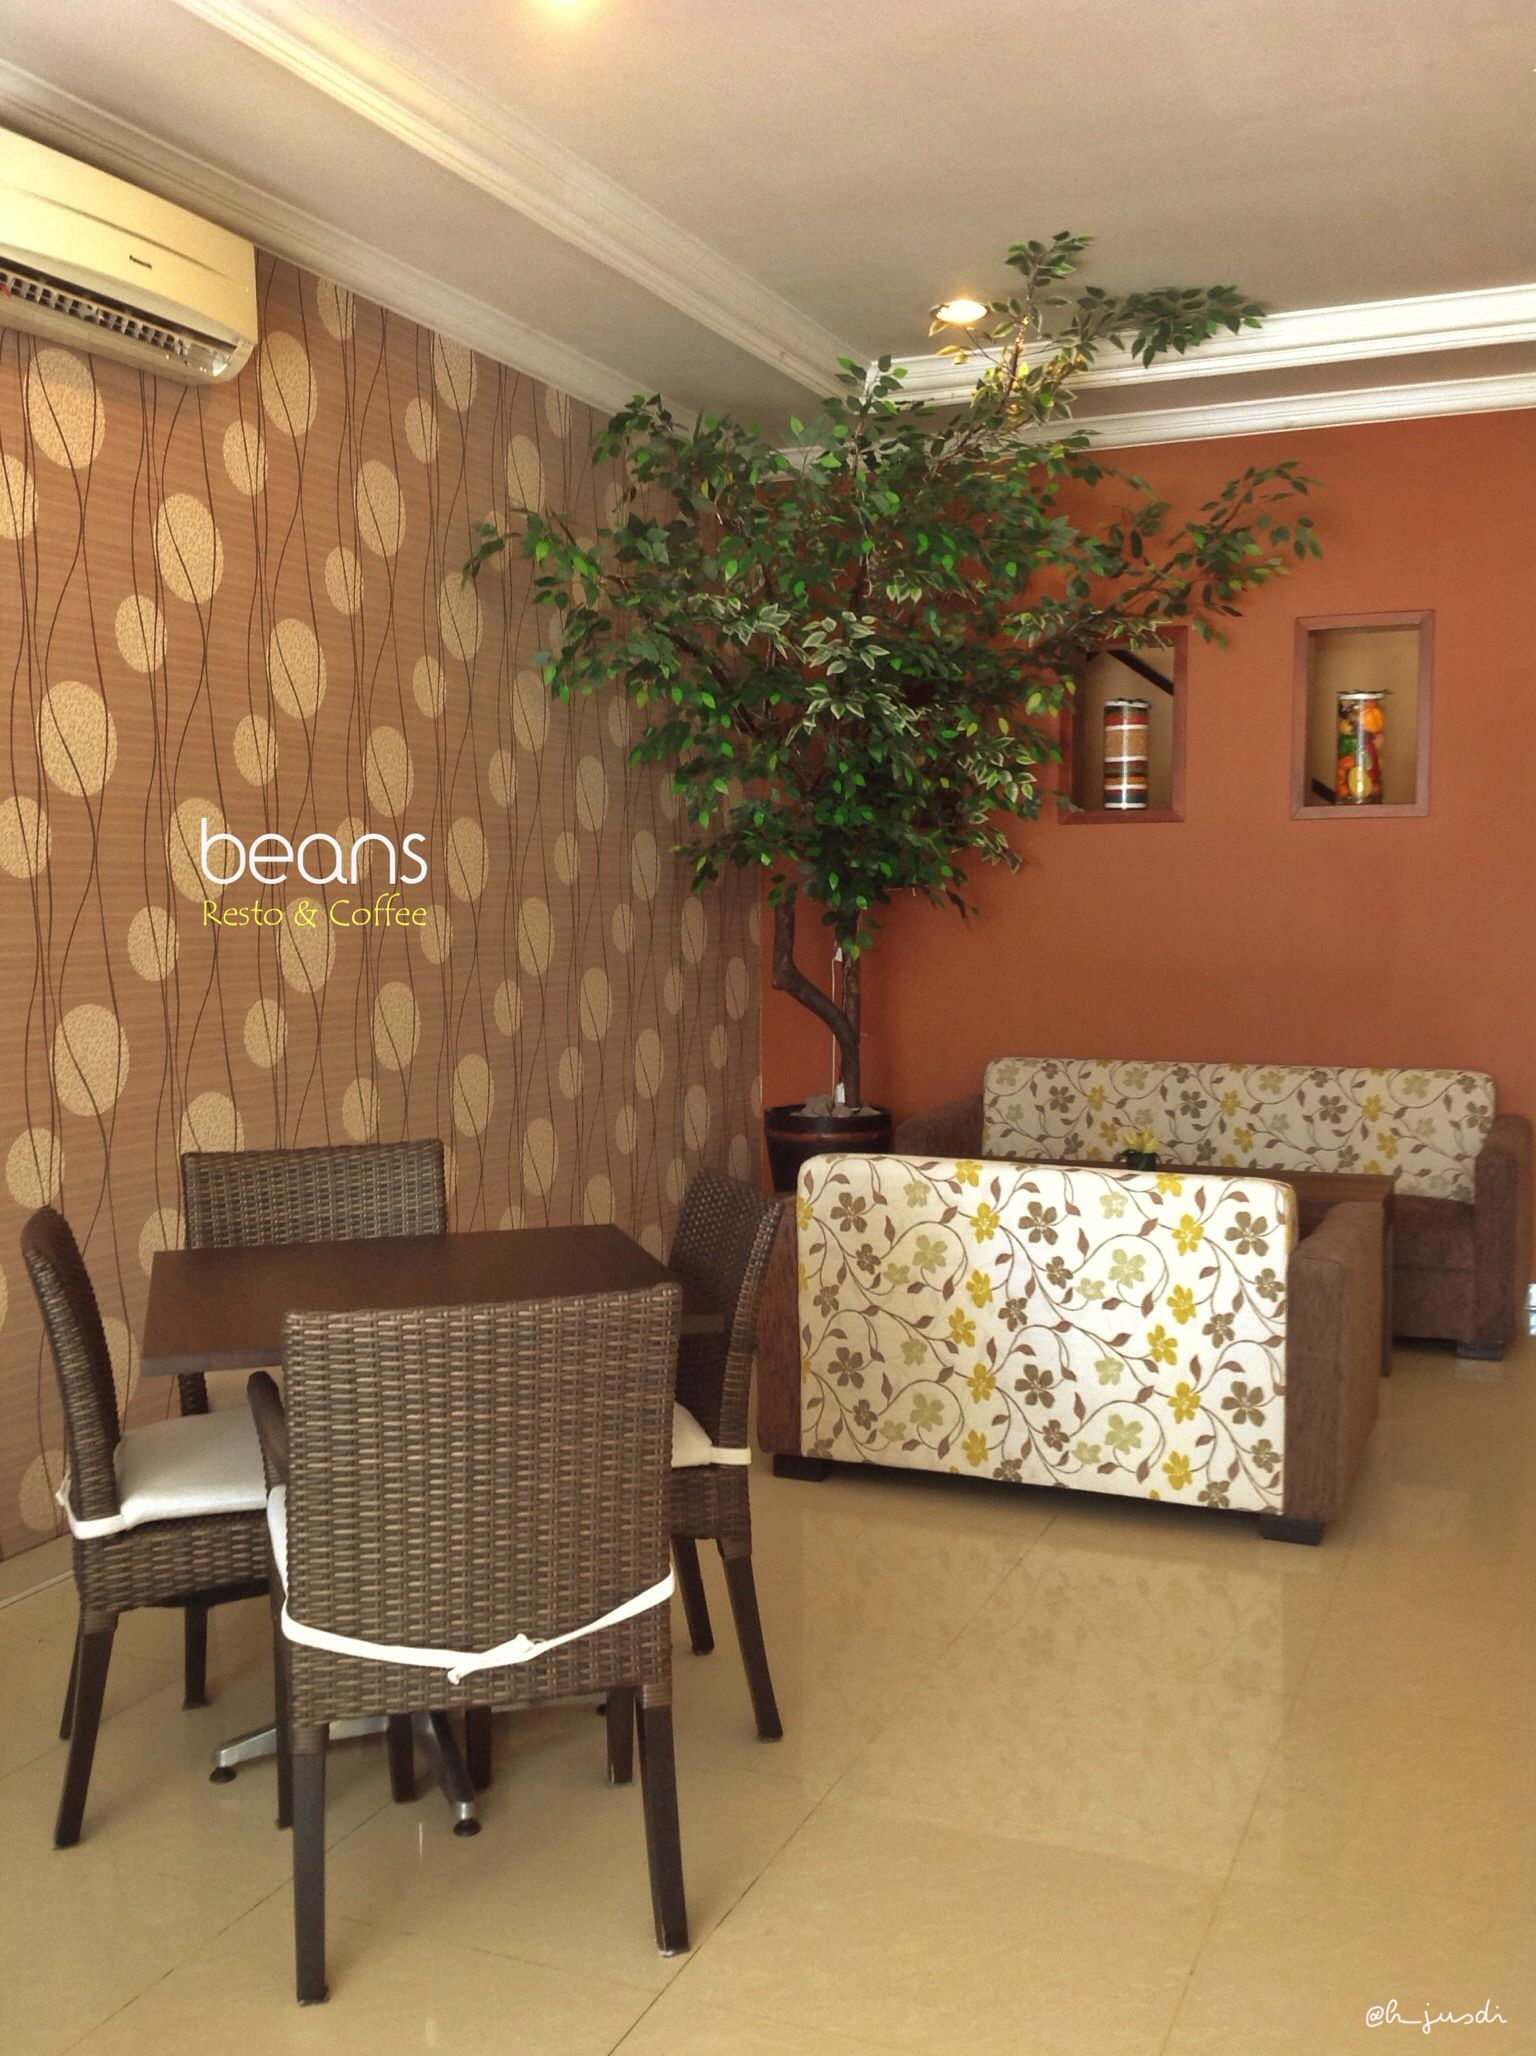 Beans Resto & Coffee Semarang Central Java INDONESIA